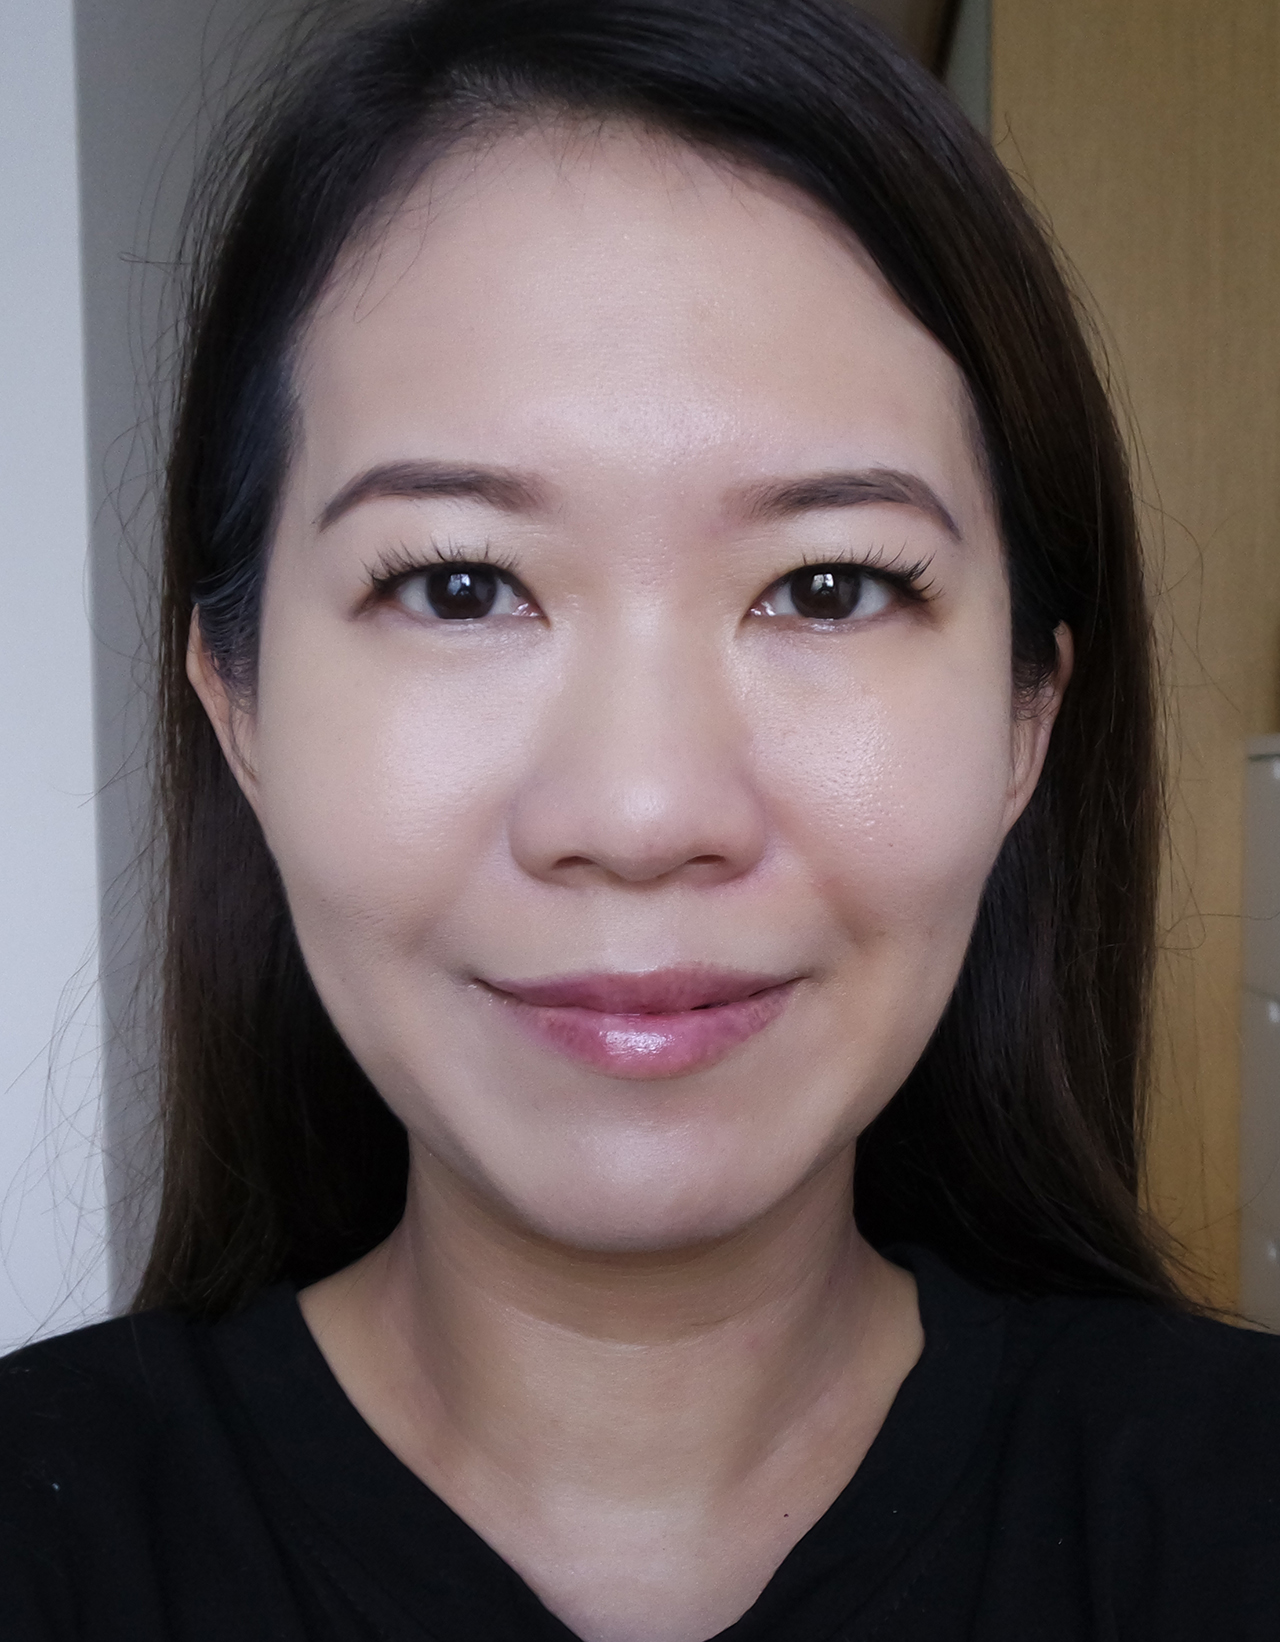 YSL All Hours Foundation before after